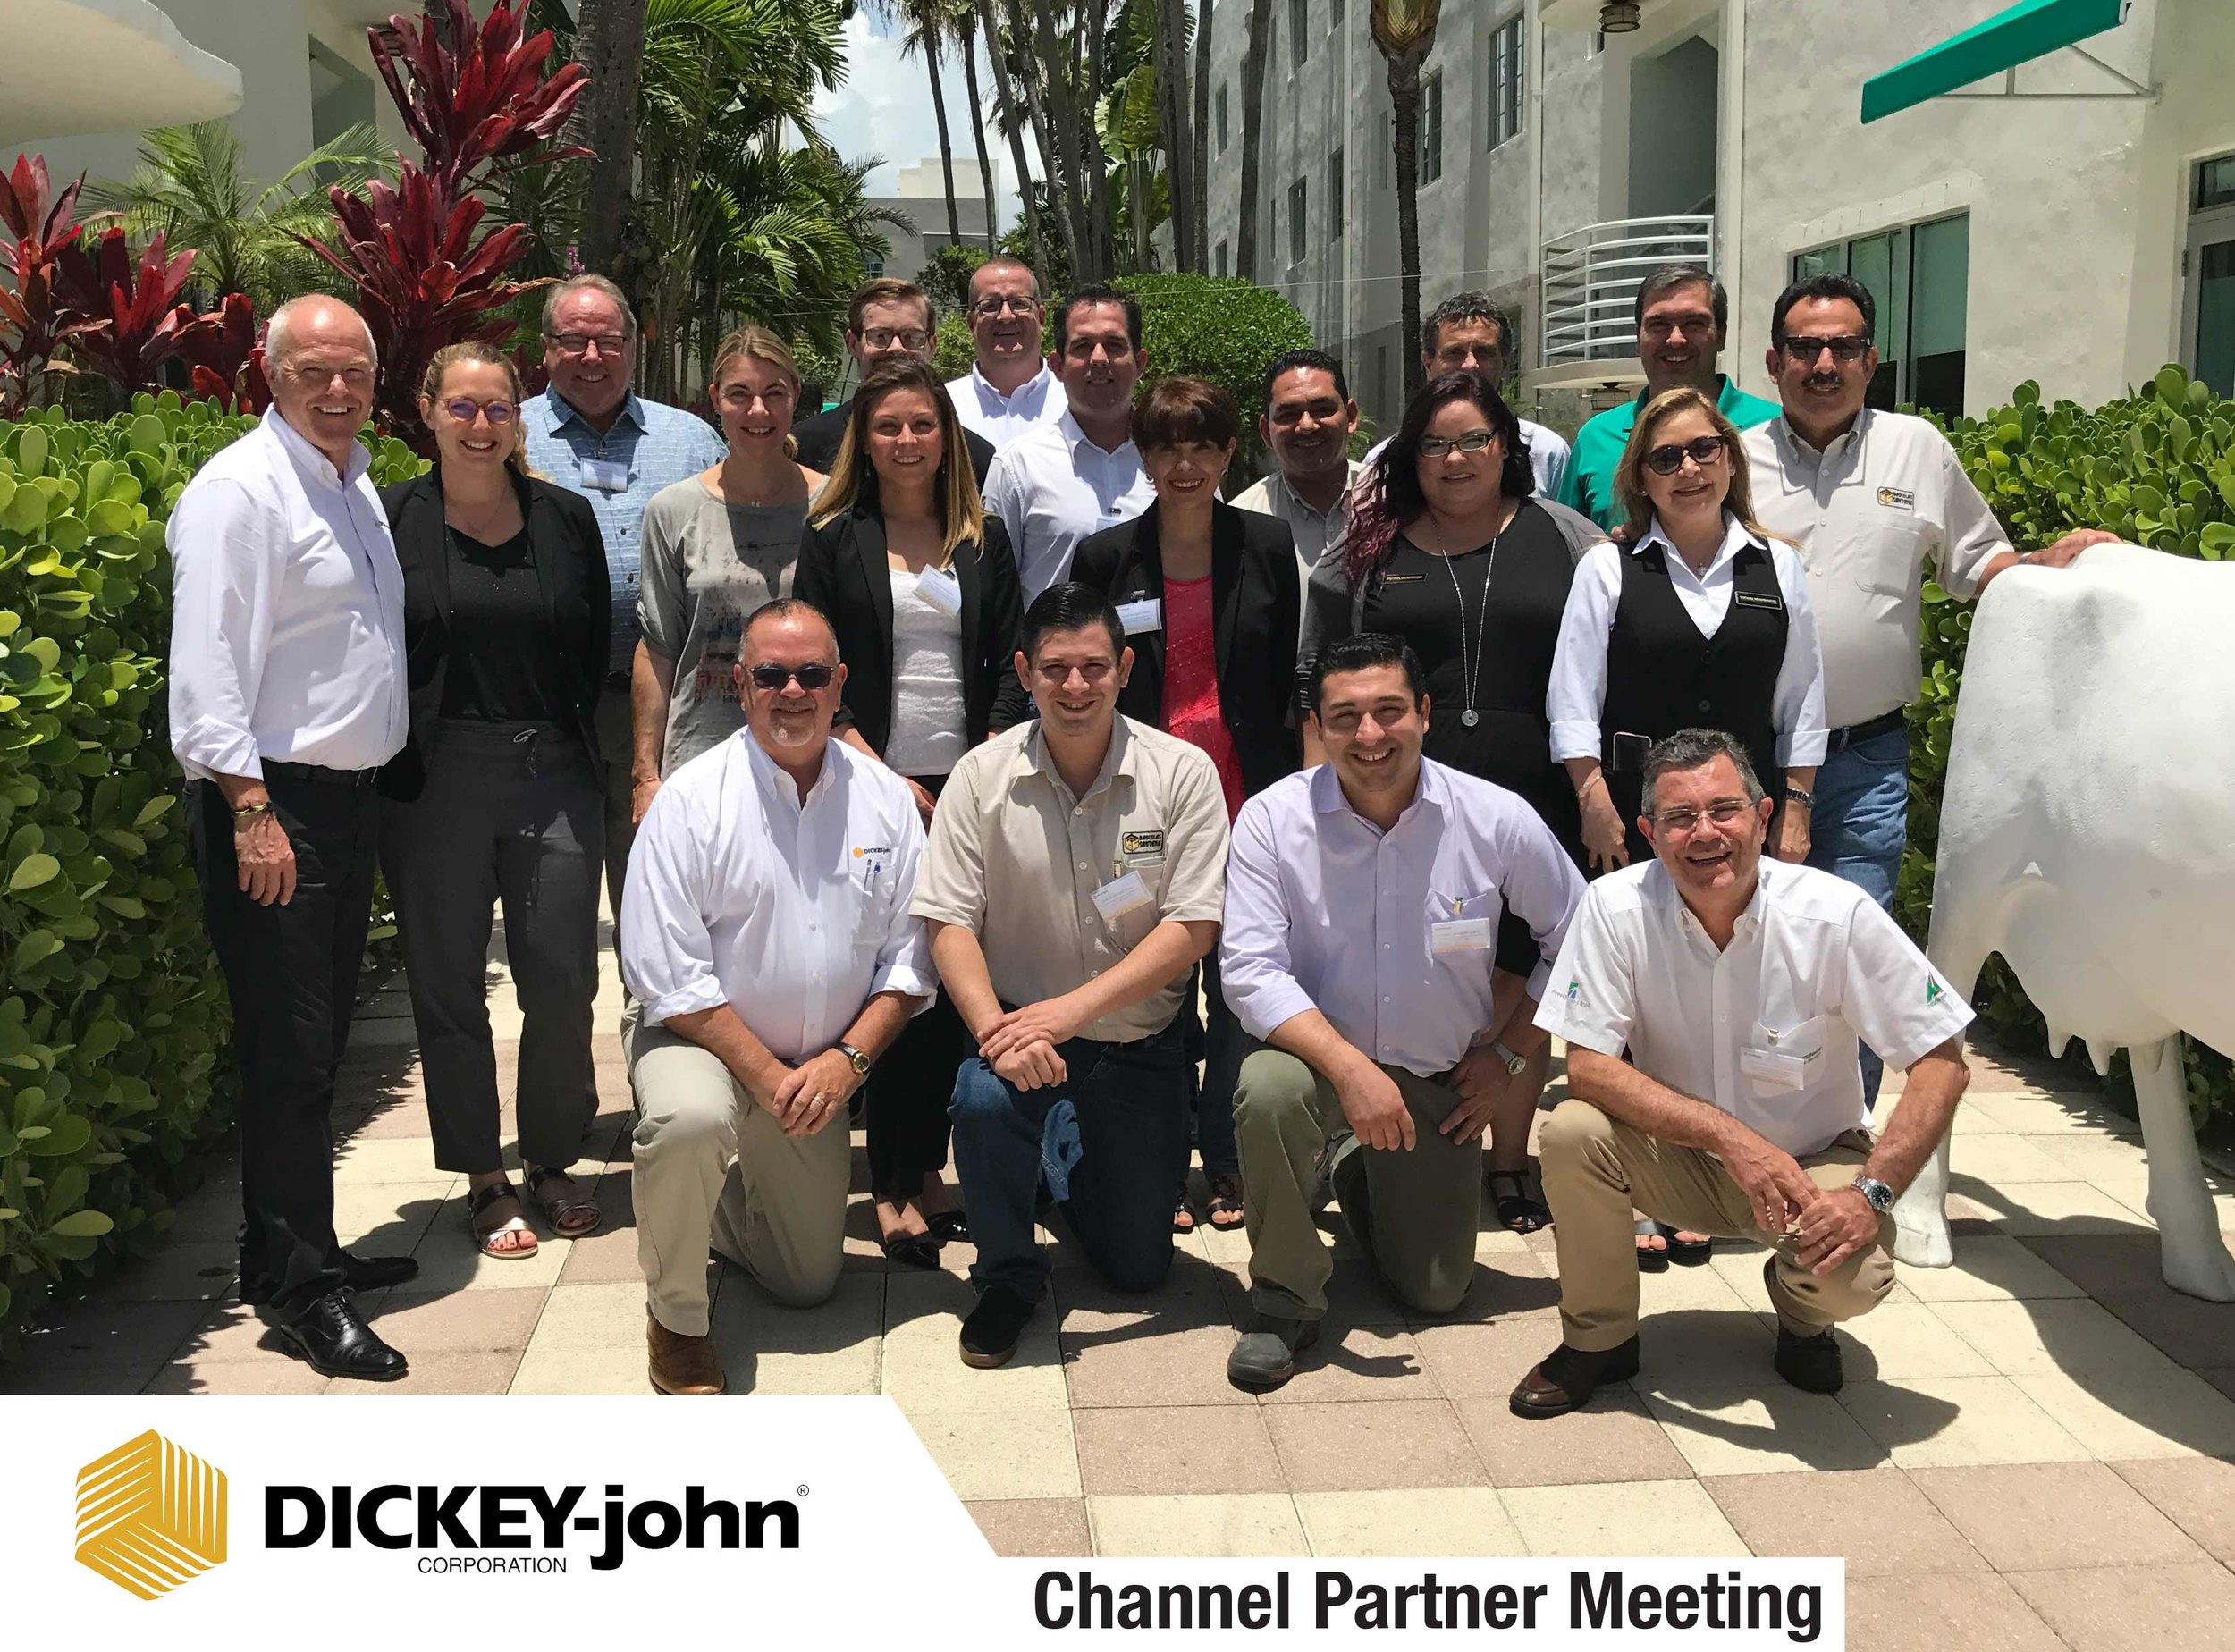 Group-Picture-Miami-Channel-Partner-Meeting-2018.jpg